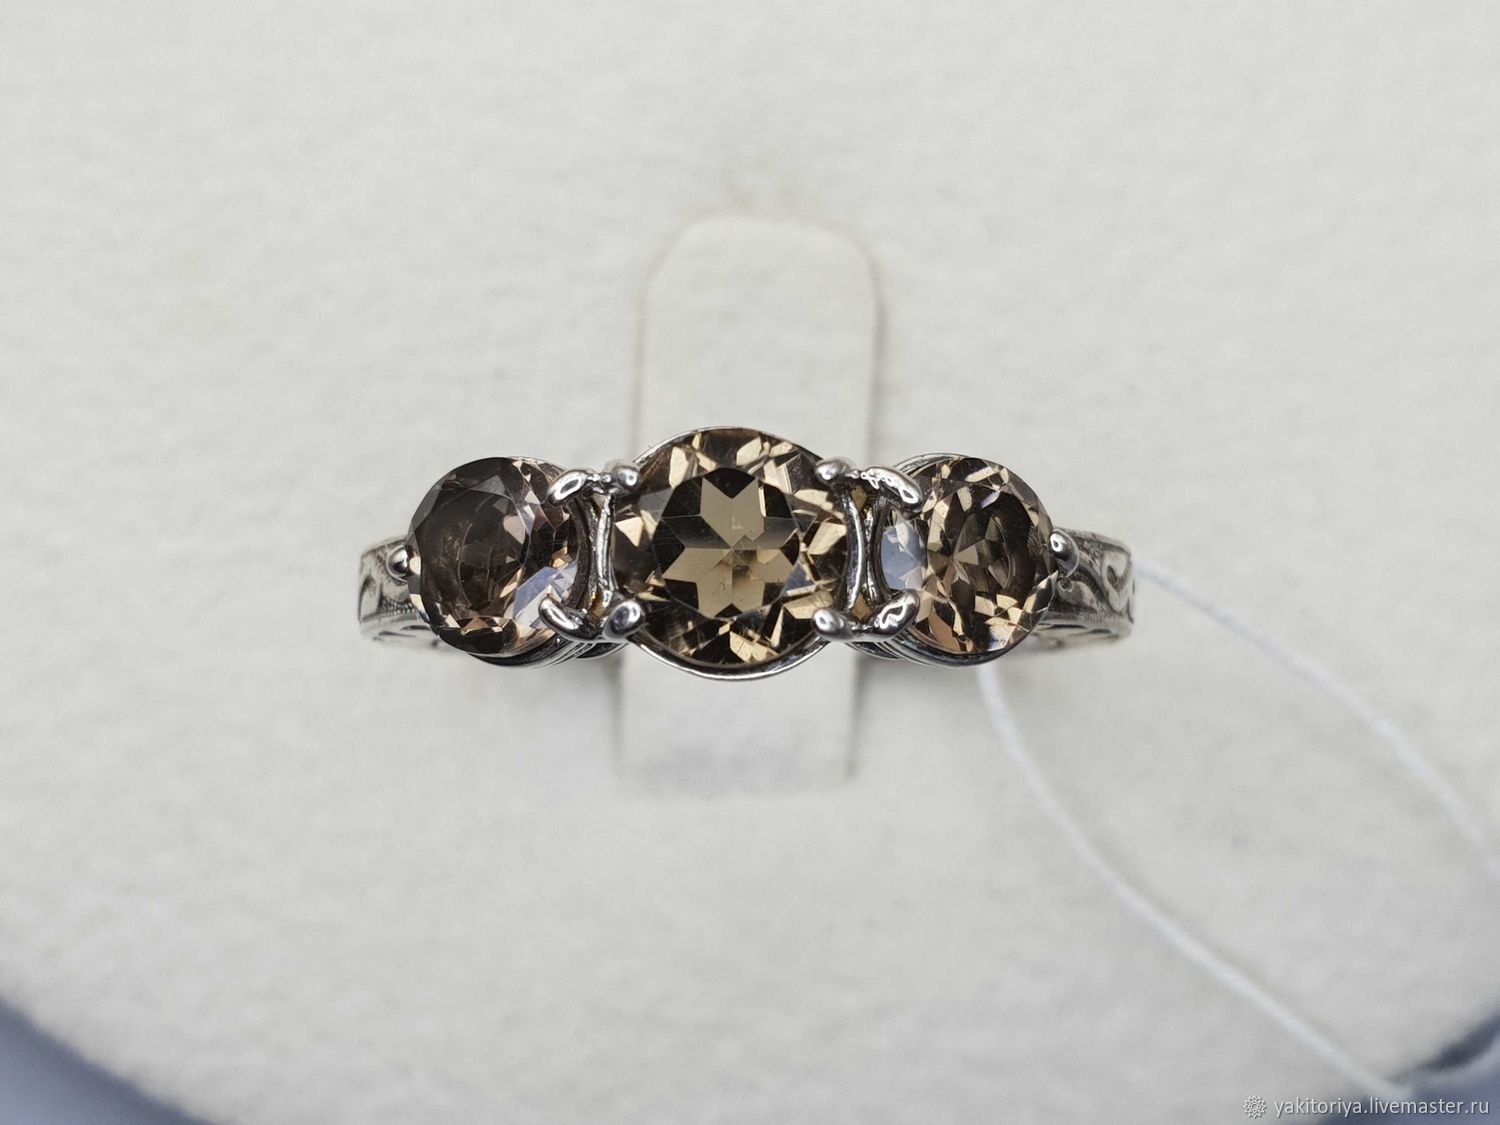 Silver ring with rauchtopazami, Rings, Moscow,  Фото №1